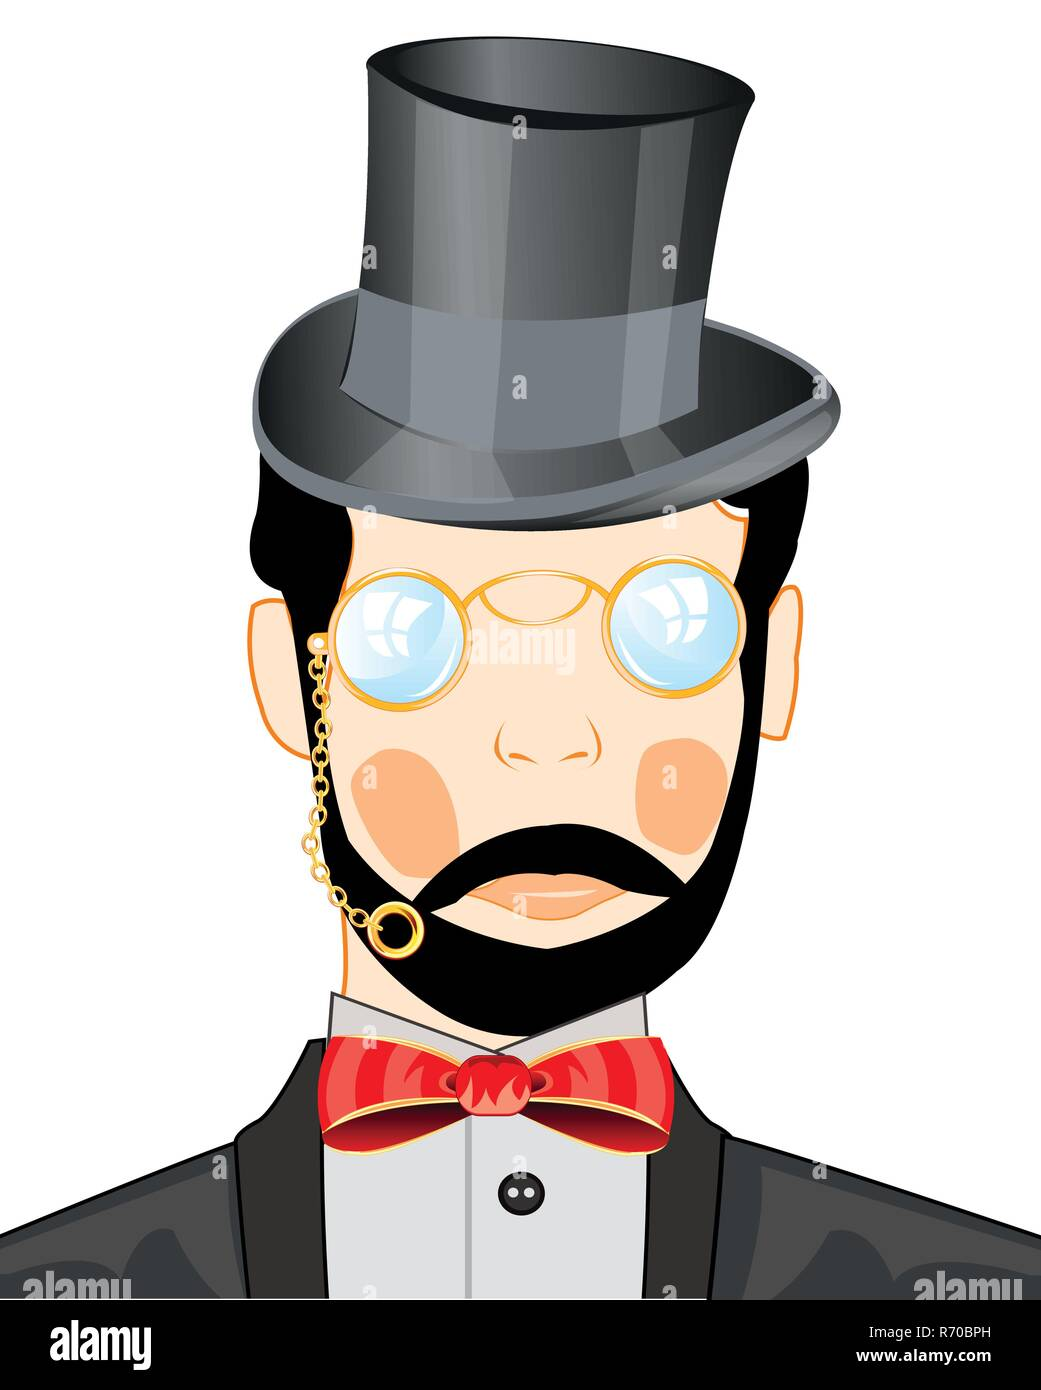 Vector illustration men in pince-nez and headdress - Stock Image